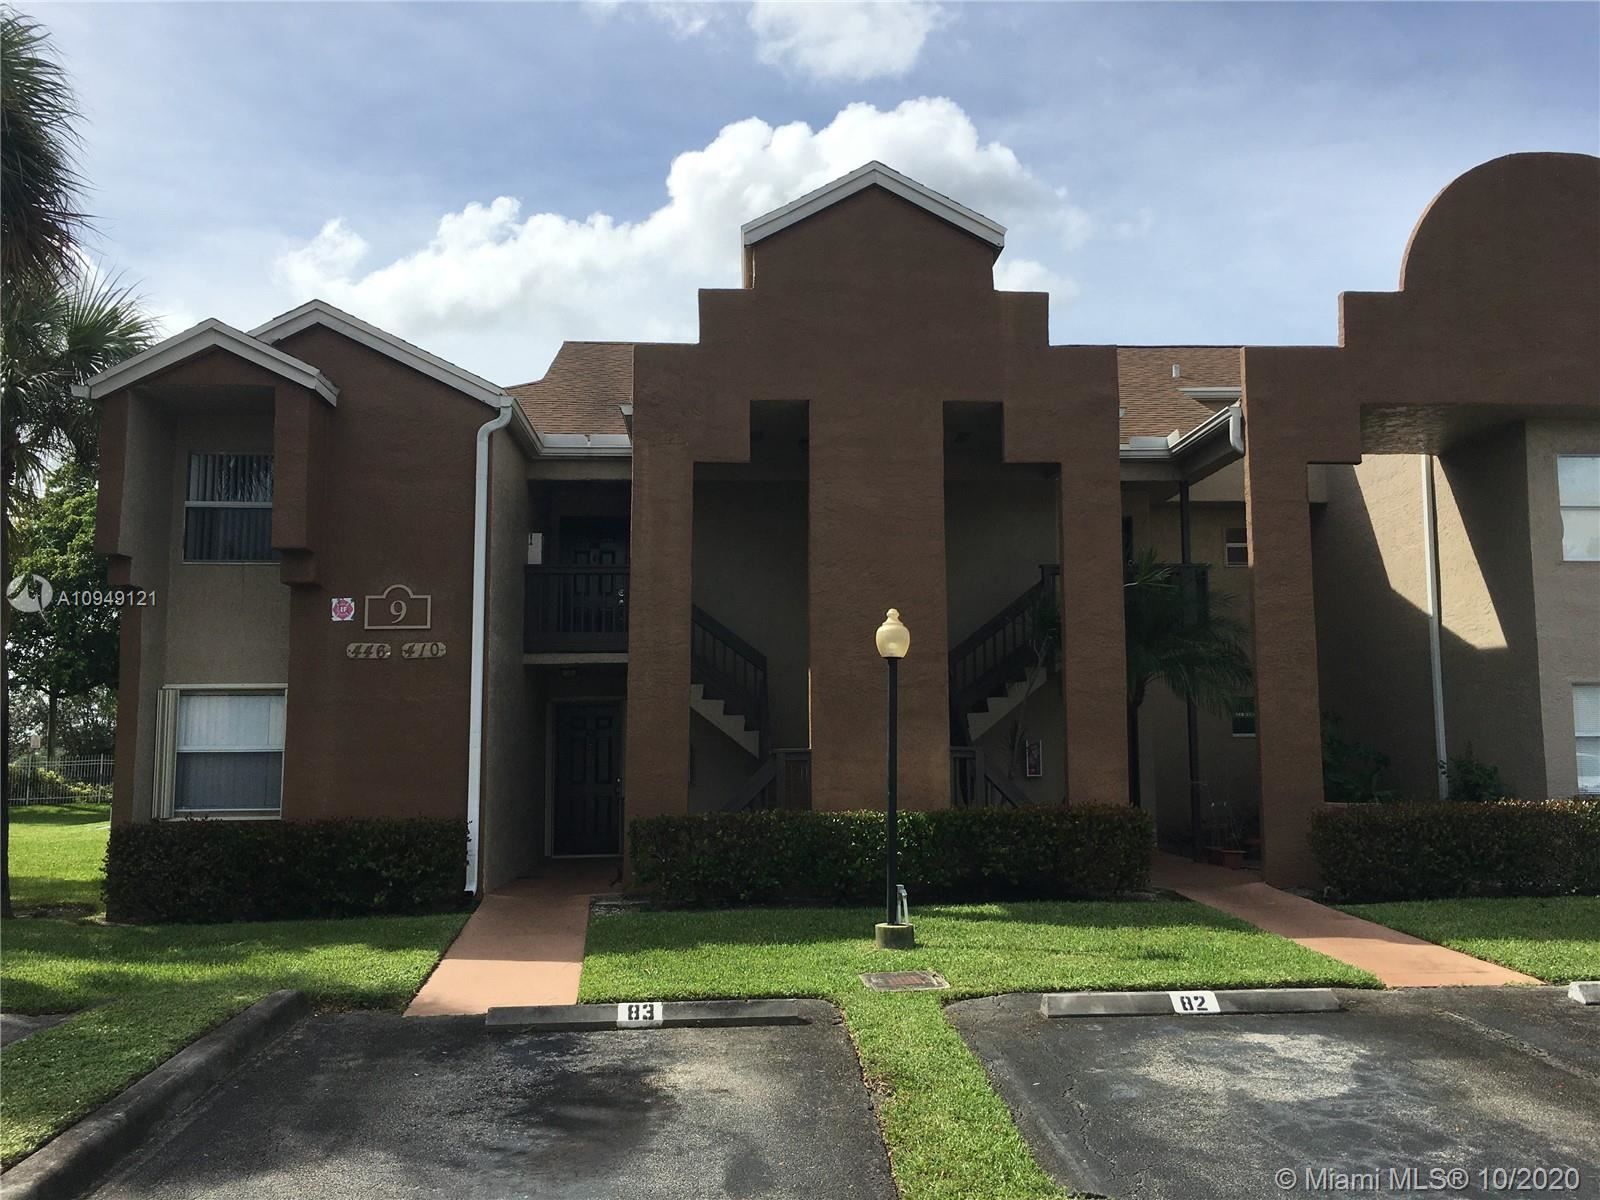 436 SW 113th Way #436, Pembroke Pines, FL 33025 - #: A10949121